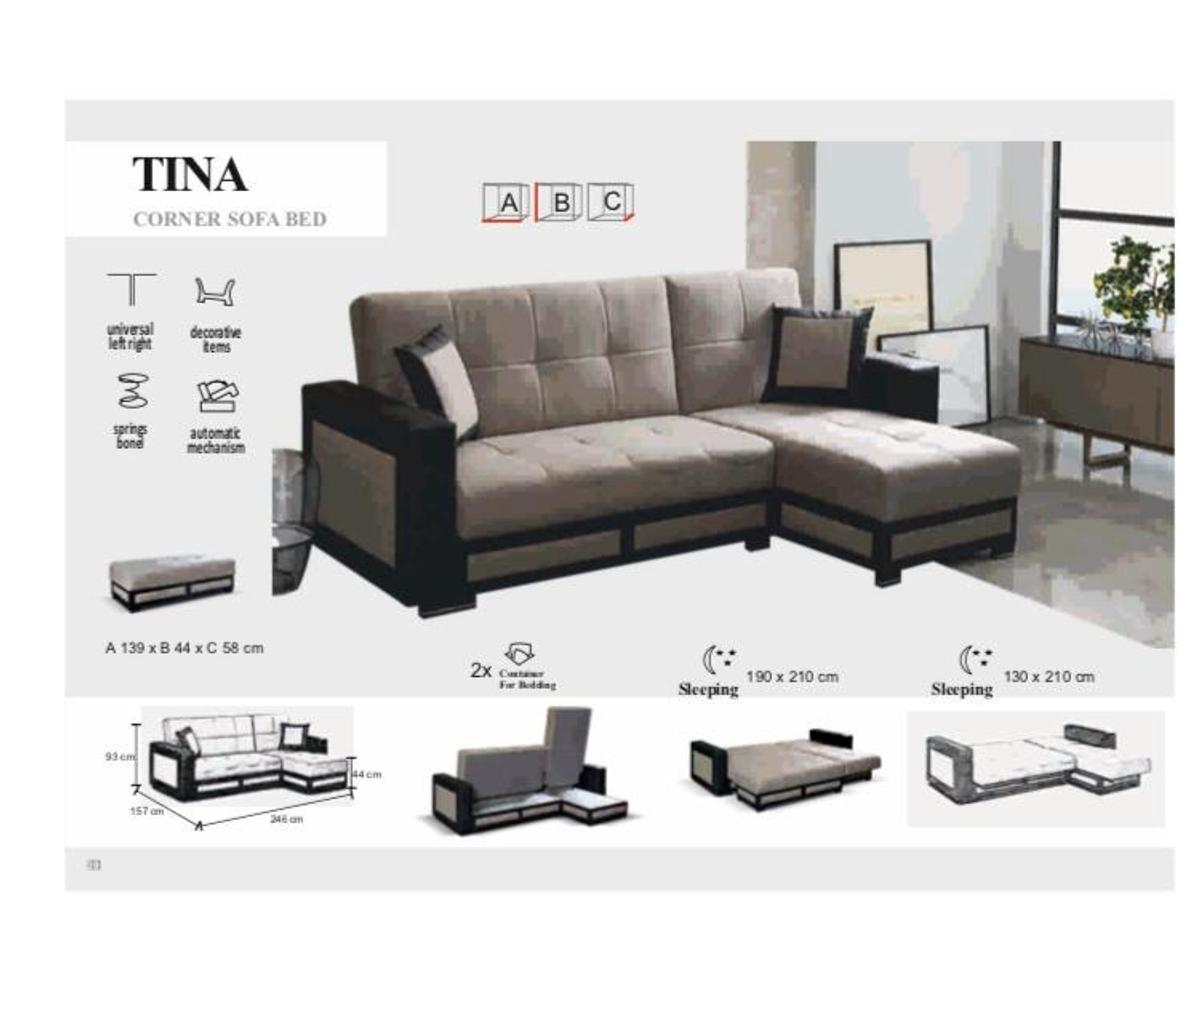 Magnificent Tina Corner Sofa Bed On Big Sale Caraccident5 Cool Chair Designs And Ideas Caraccident5Info